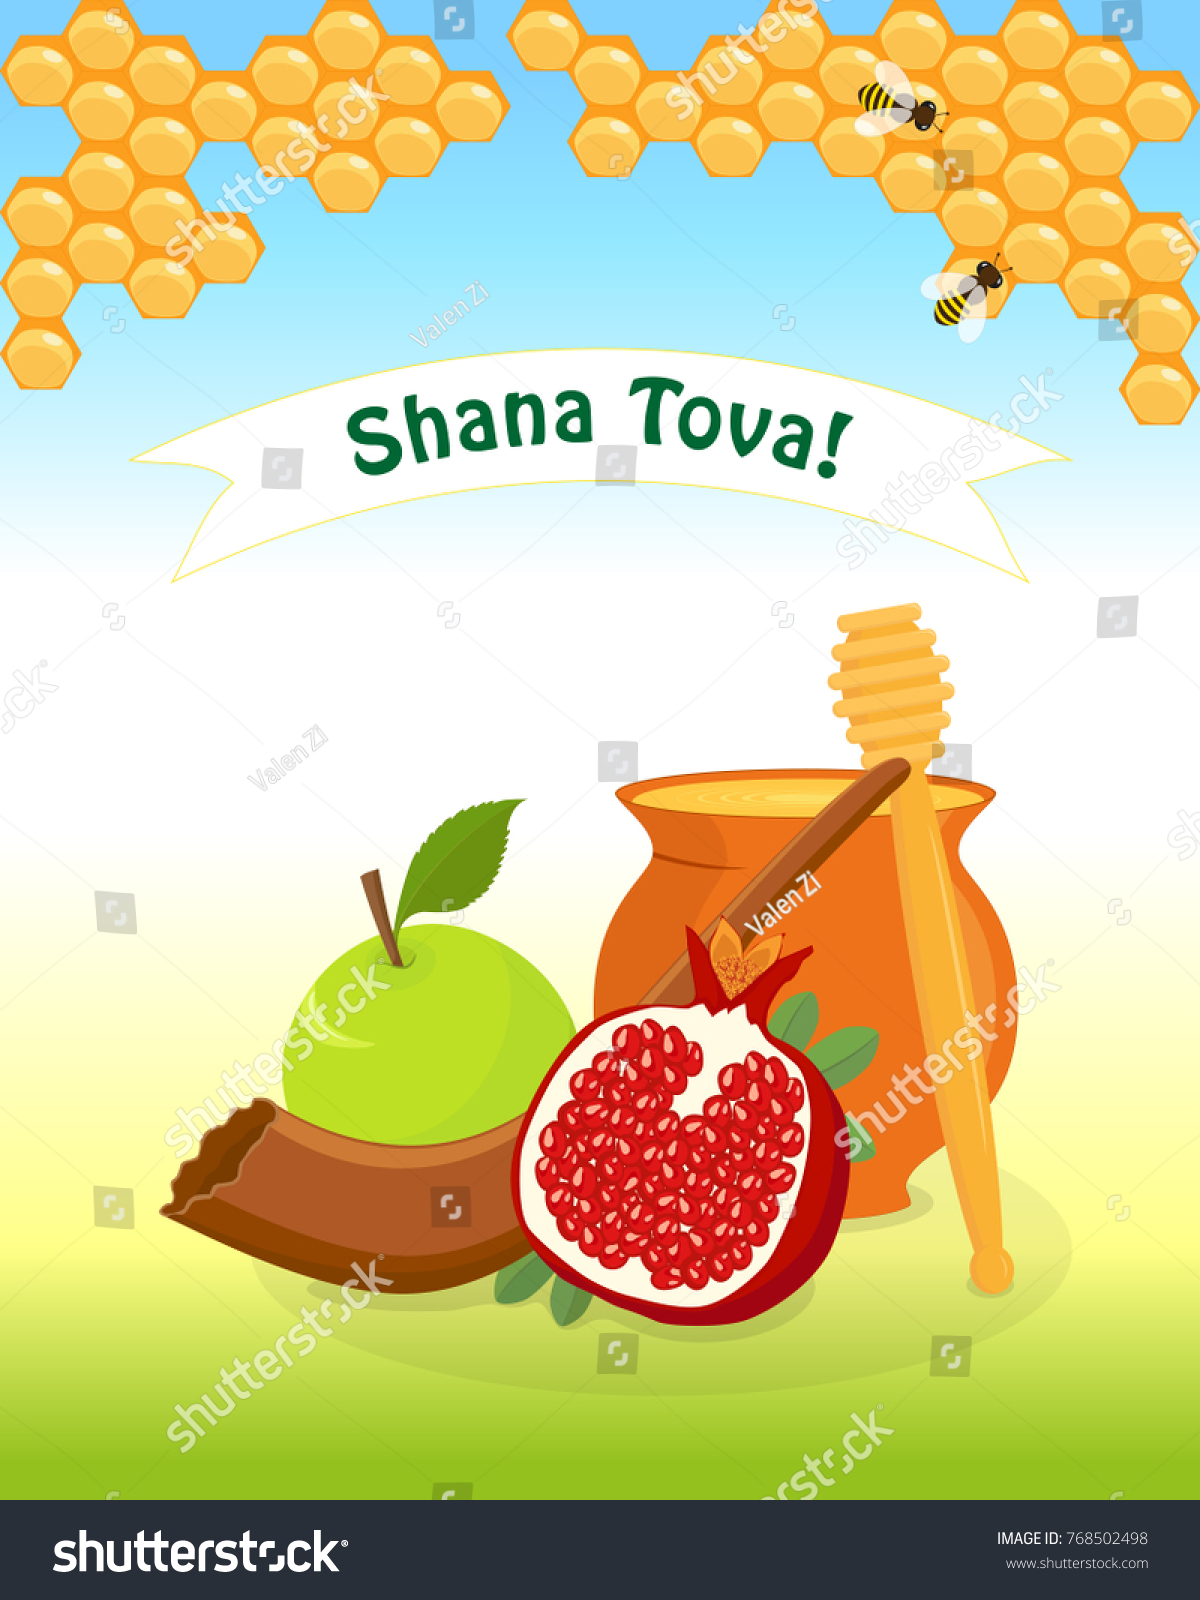 Greeting card jewish new year rosh stock vector 768502498 shutterstock greeting card for jewish new year rosh hashanah with traditional holiday symbols apple pomegranate kristyandbryce Choice Image